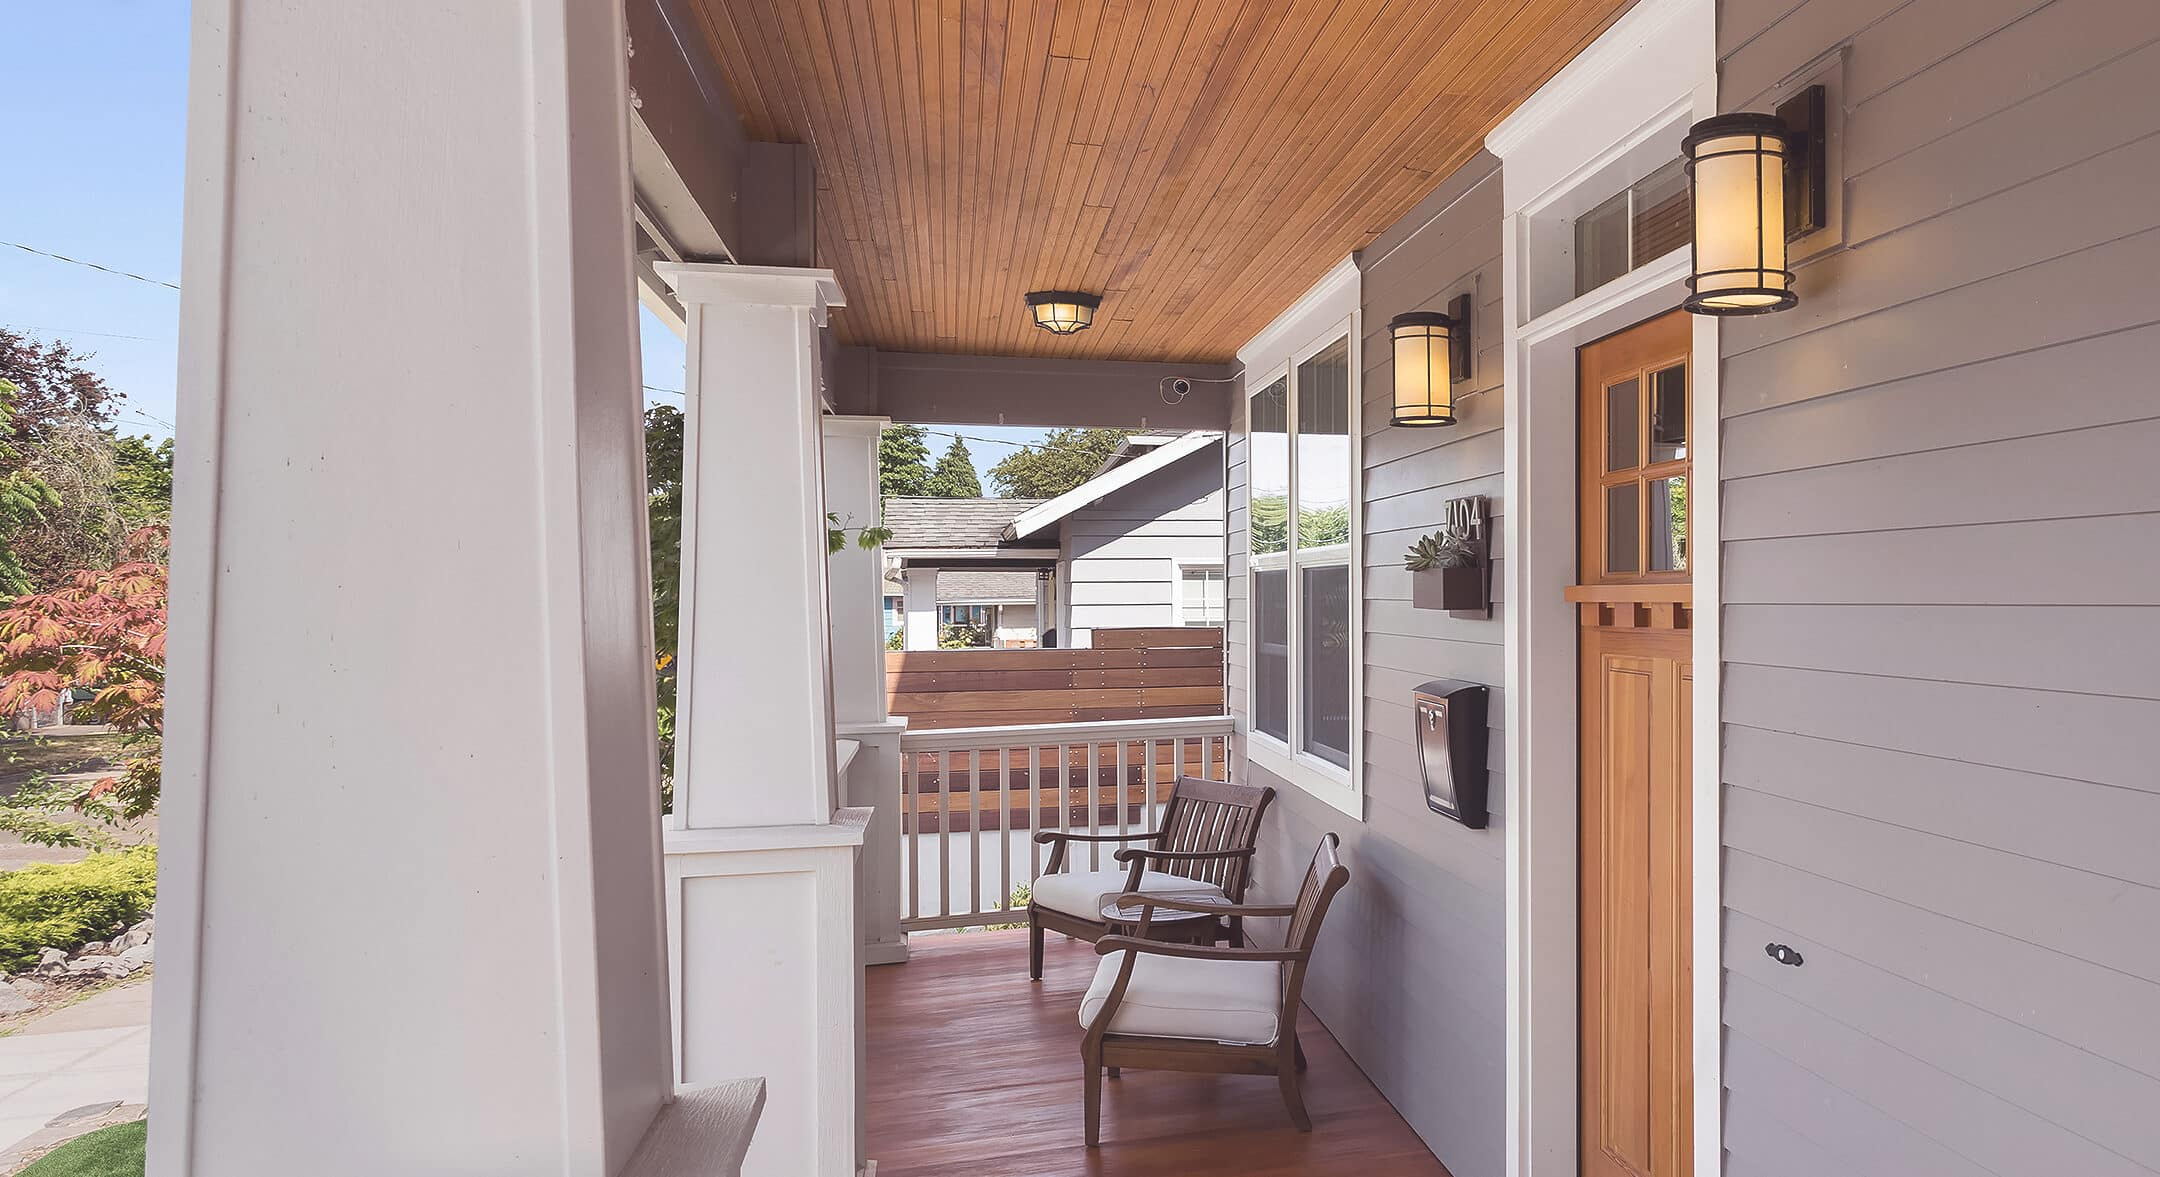 The porch of a newly purchased home.